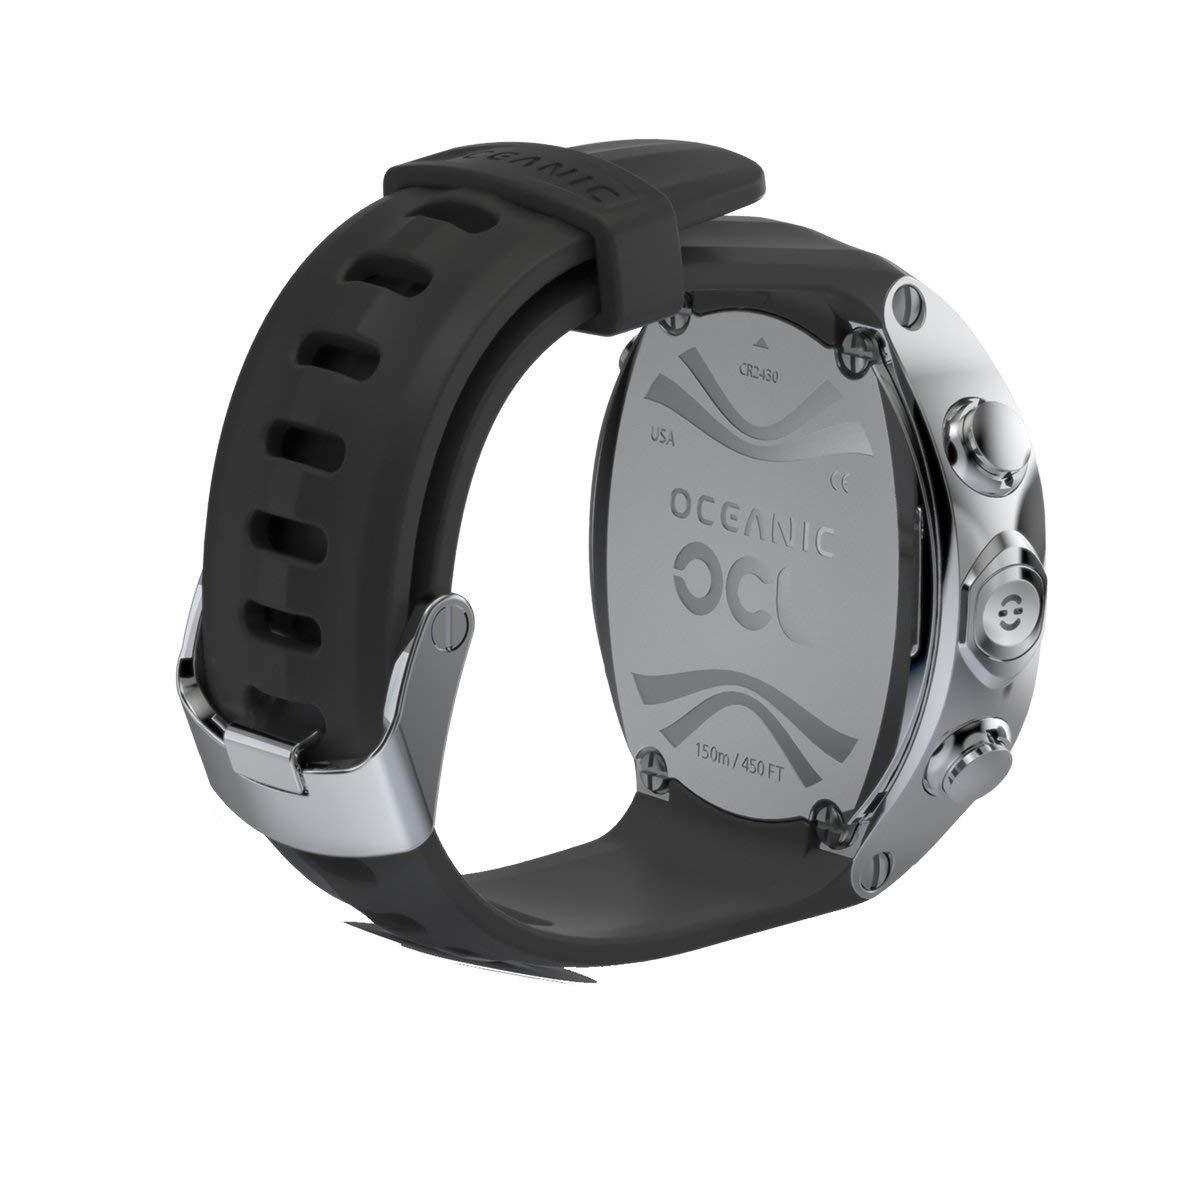 Oceanic OCL Scuba Watch Dive Computer